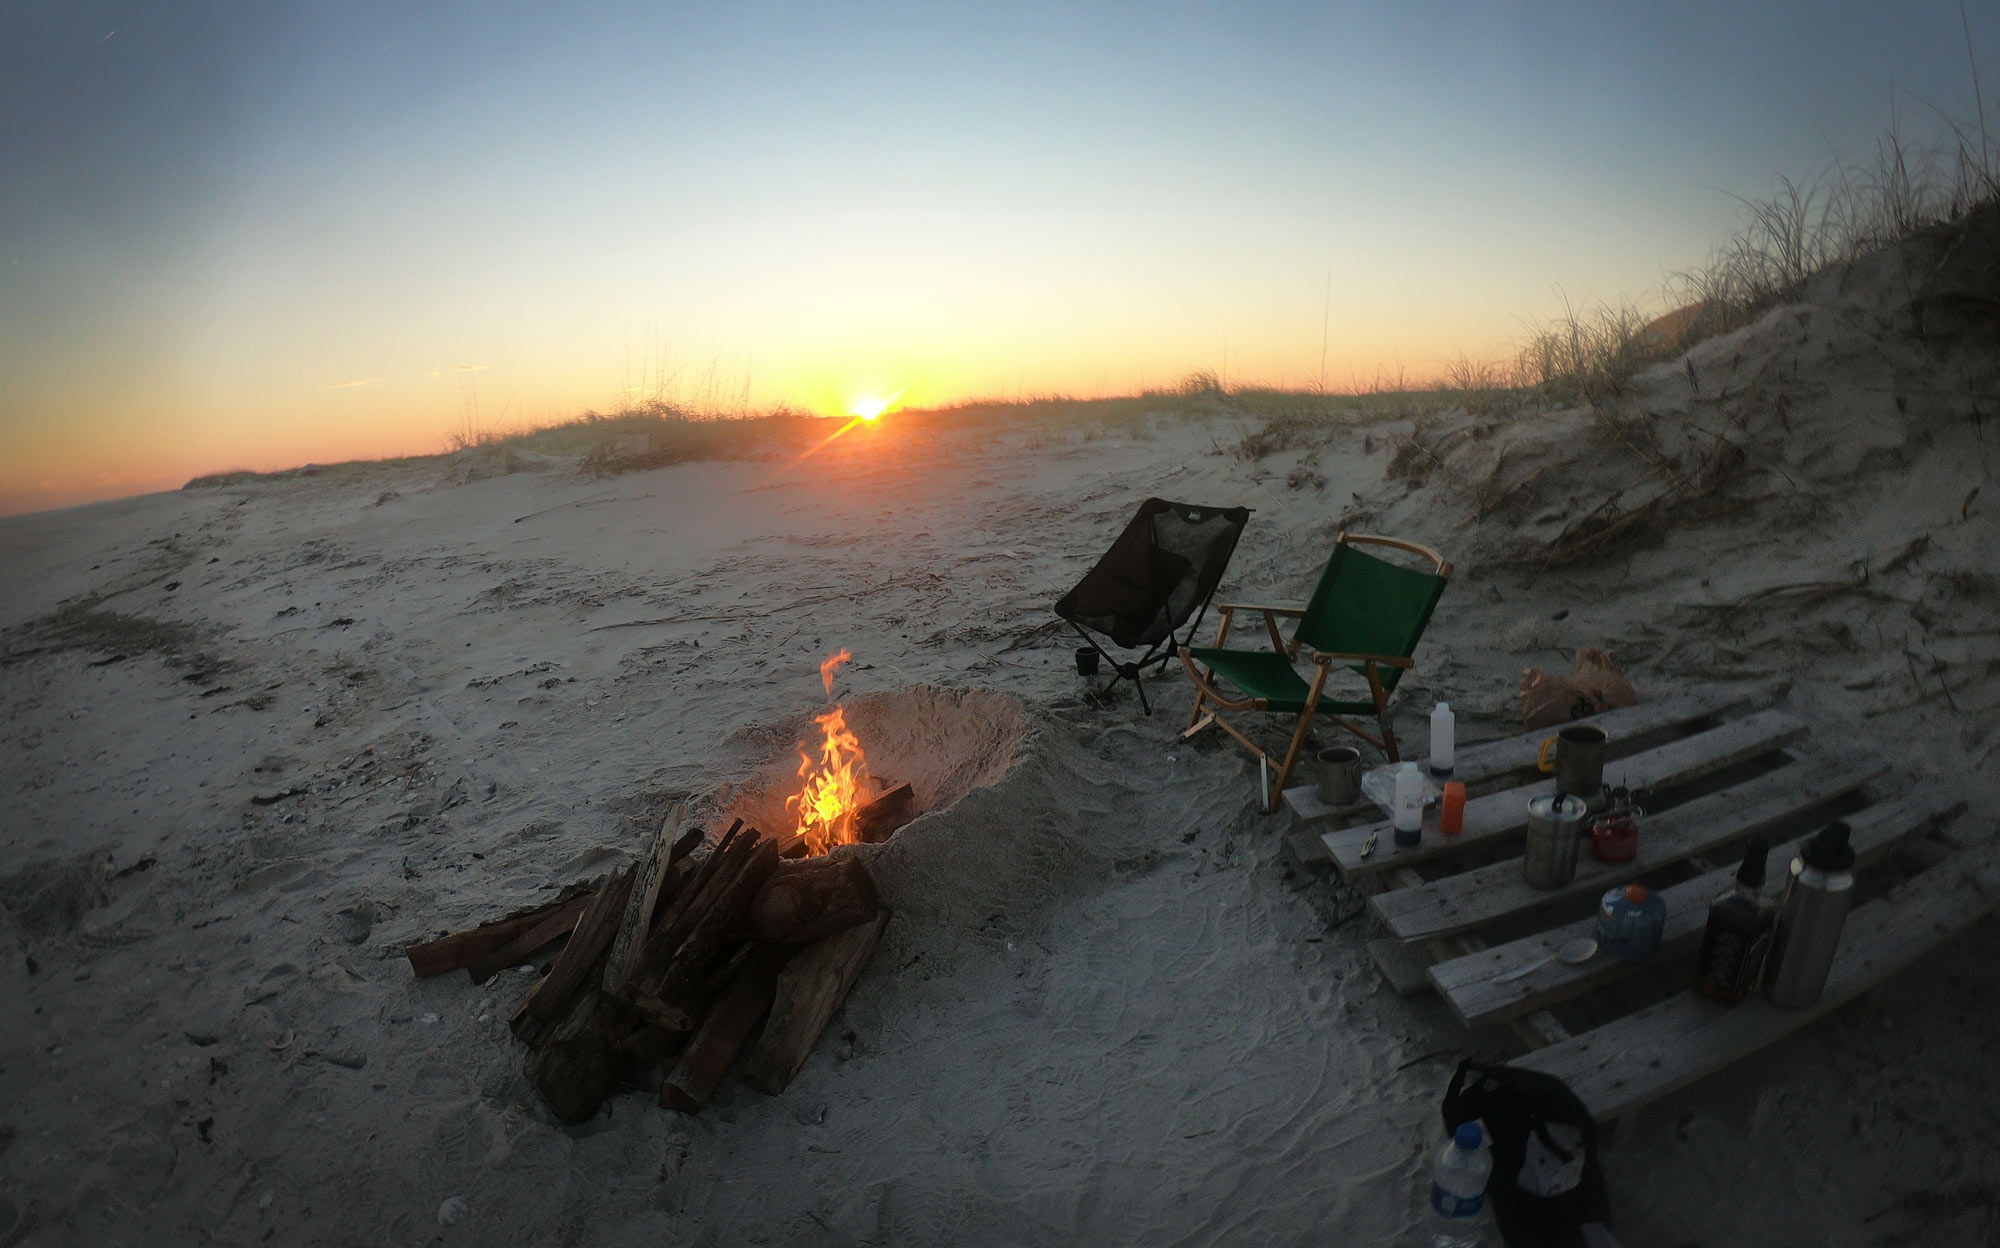 Beach campfire on Masonboro Island, North Carolina